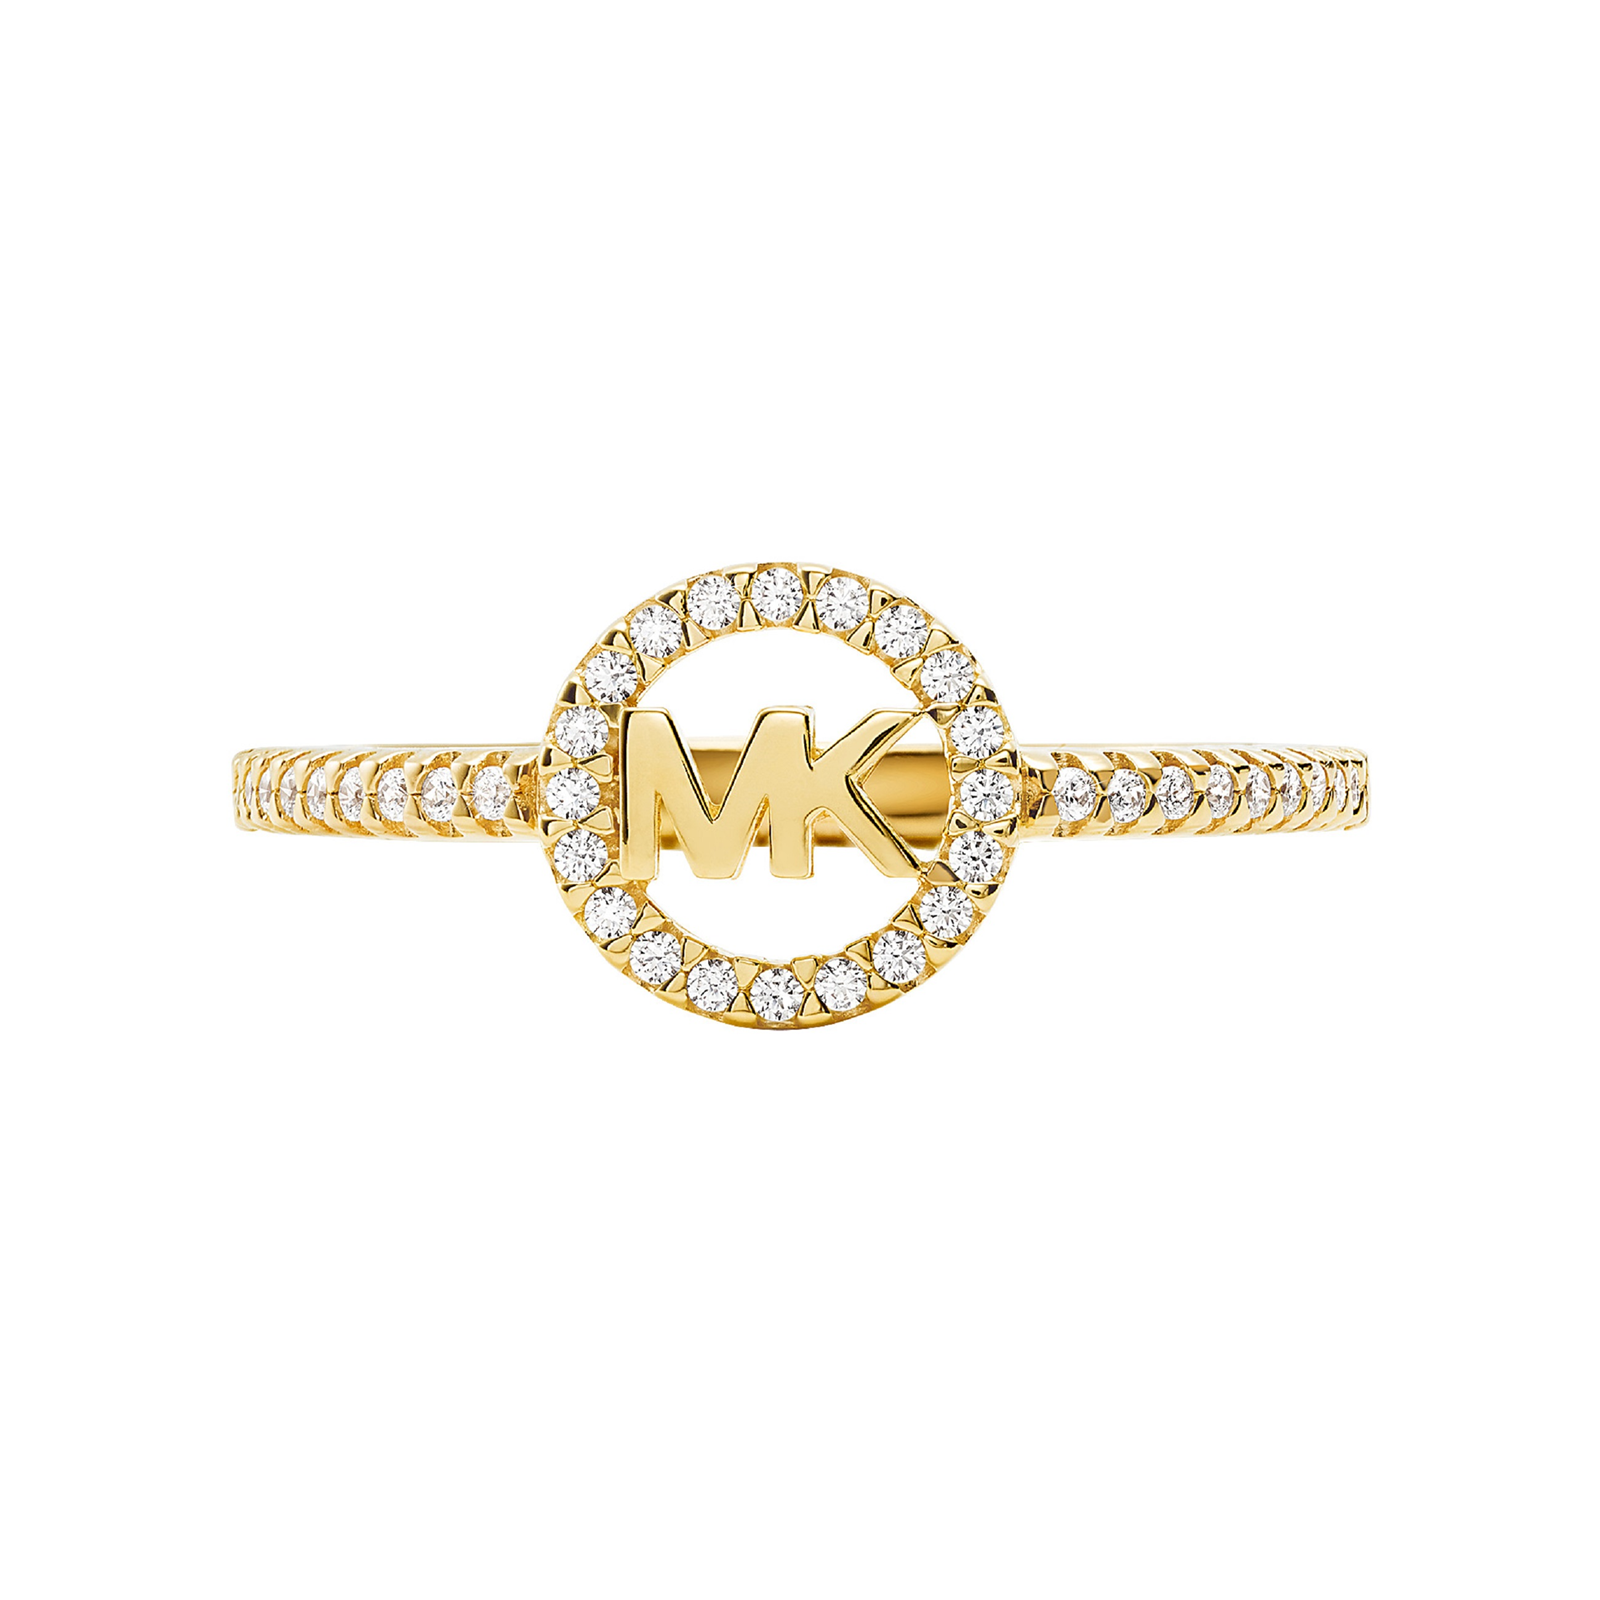 Michael Kors 14ct Yellow Gold Plated Pave Charm Logo Ring Size O